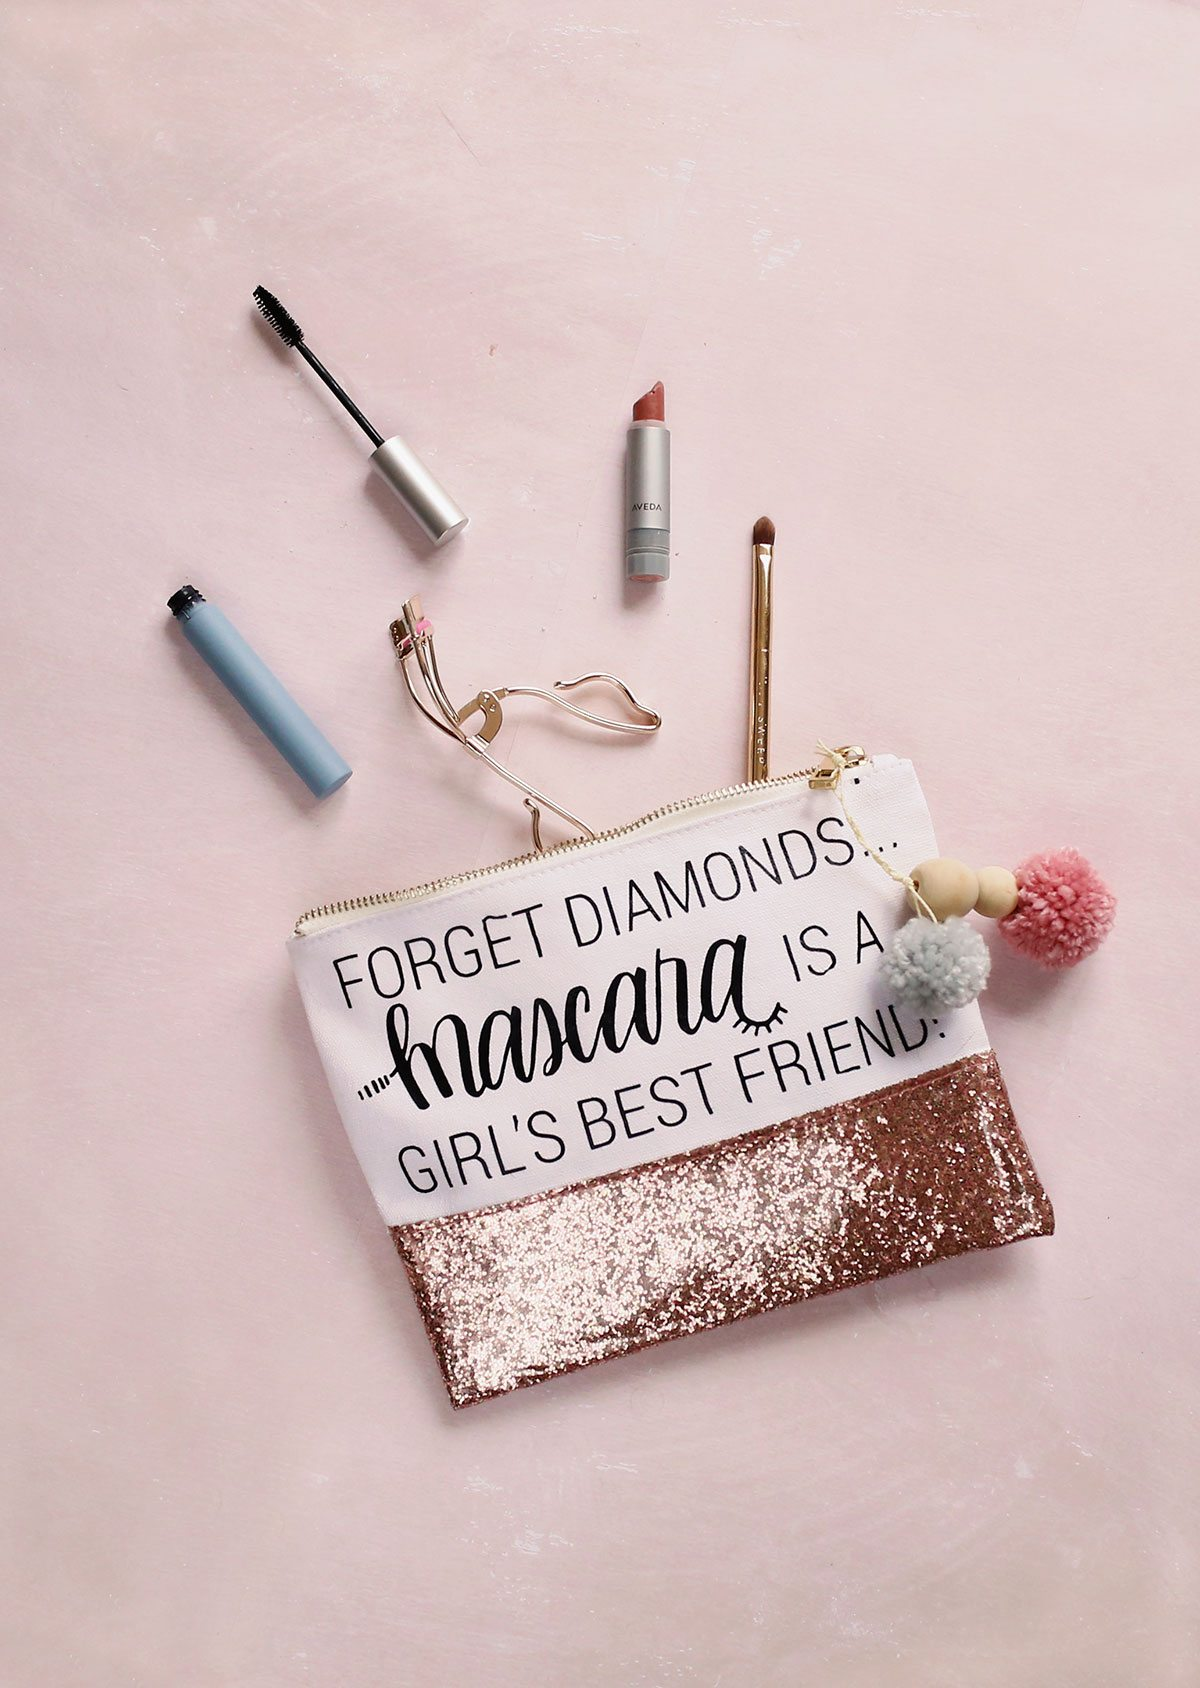 DIY fun makeup bag with a touch of glitter